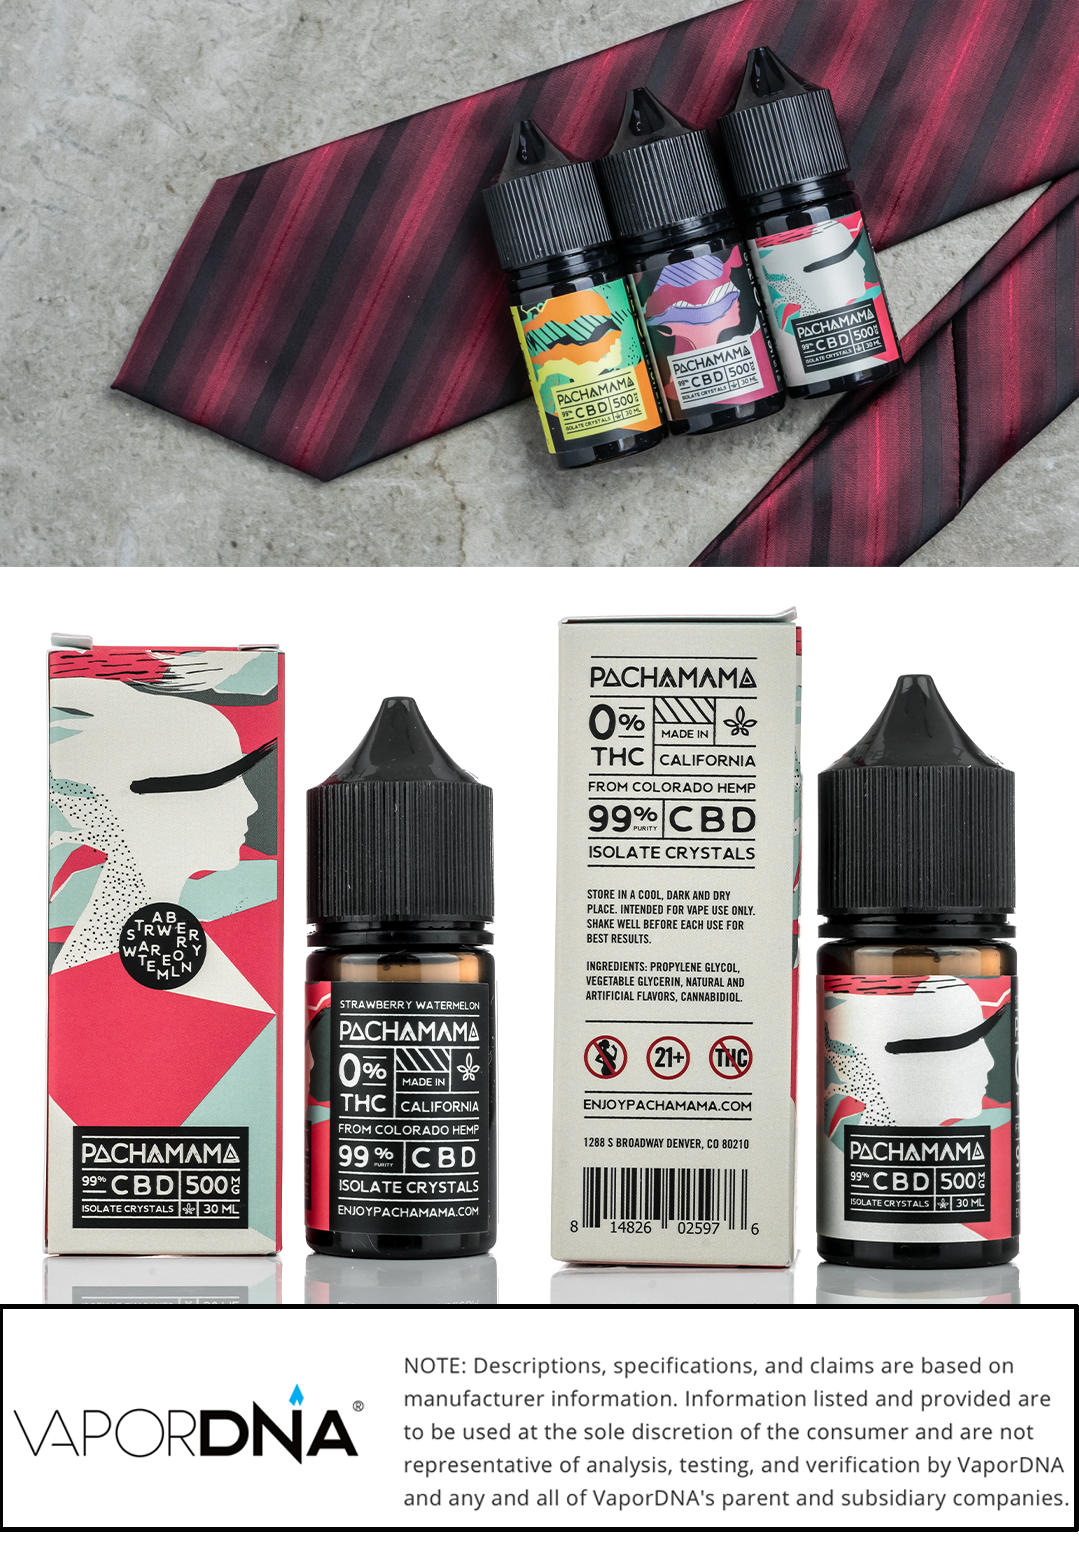 pachamama cbd vape juice infographic-strawberry